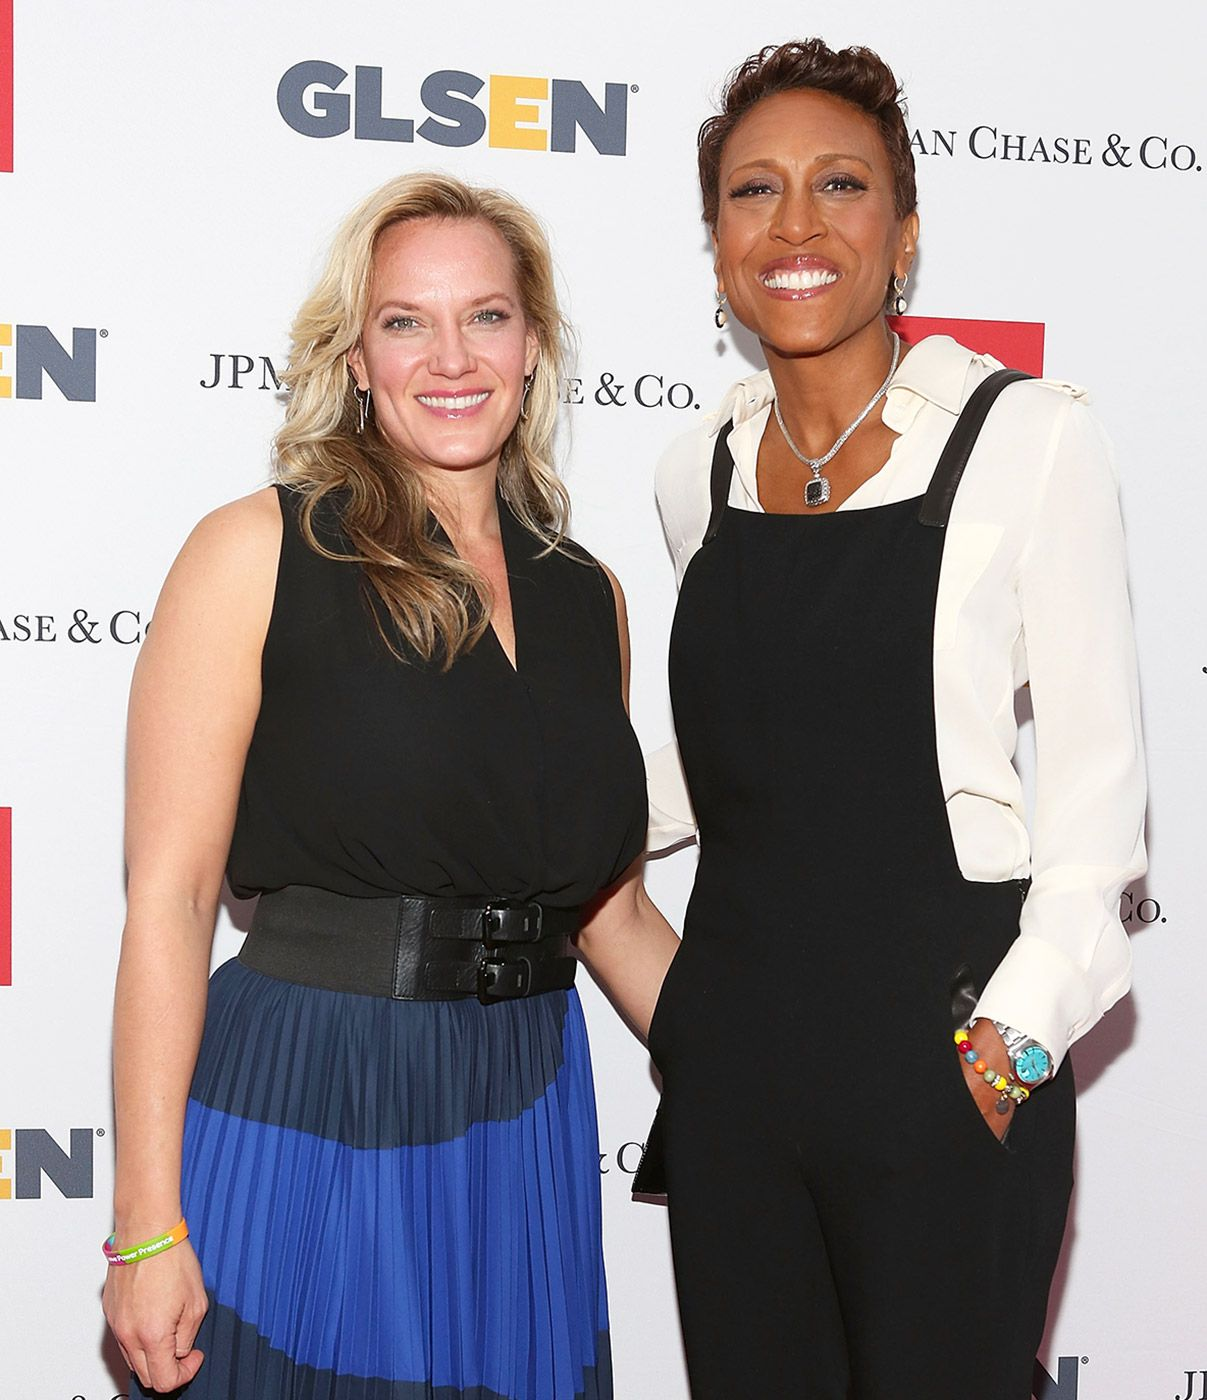 Robin Roberts sharing a smile with his partner, Amber Laign